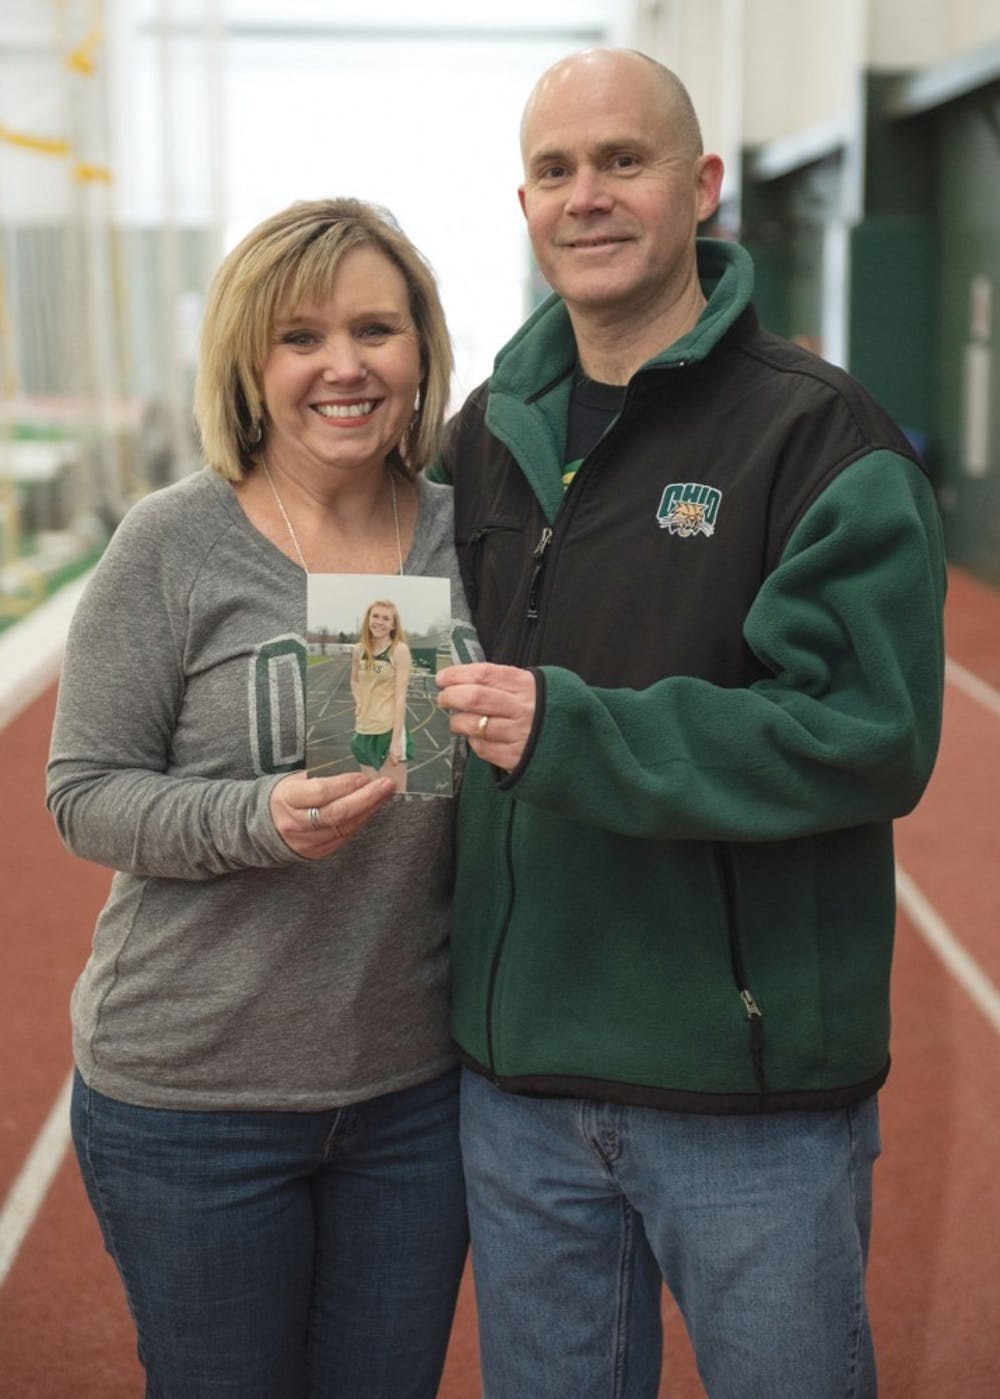 Parents serve as strongest support system for some student-athletes